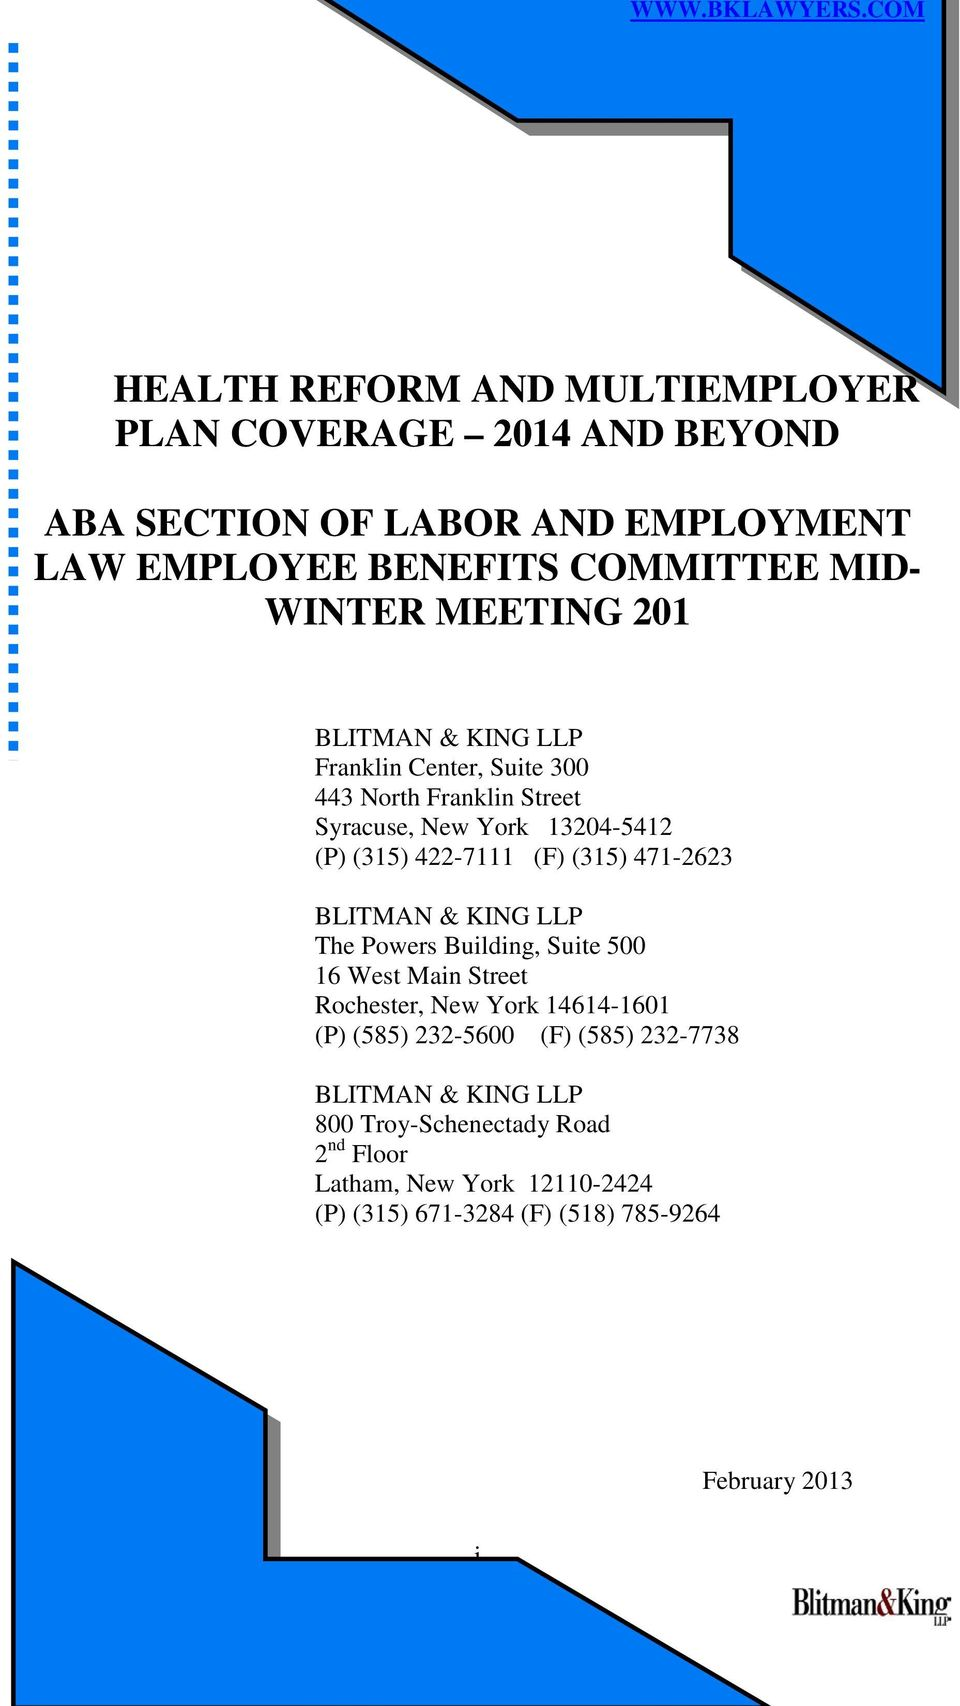 MEETING 201 BLITMAN & KING LLP Franklin Center, Suite 300 443 North Franklin Street Syracuse, New York 13204-5412 (P) (315) 422-7111 (F) (315)